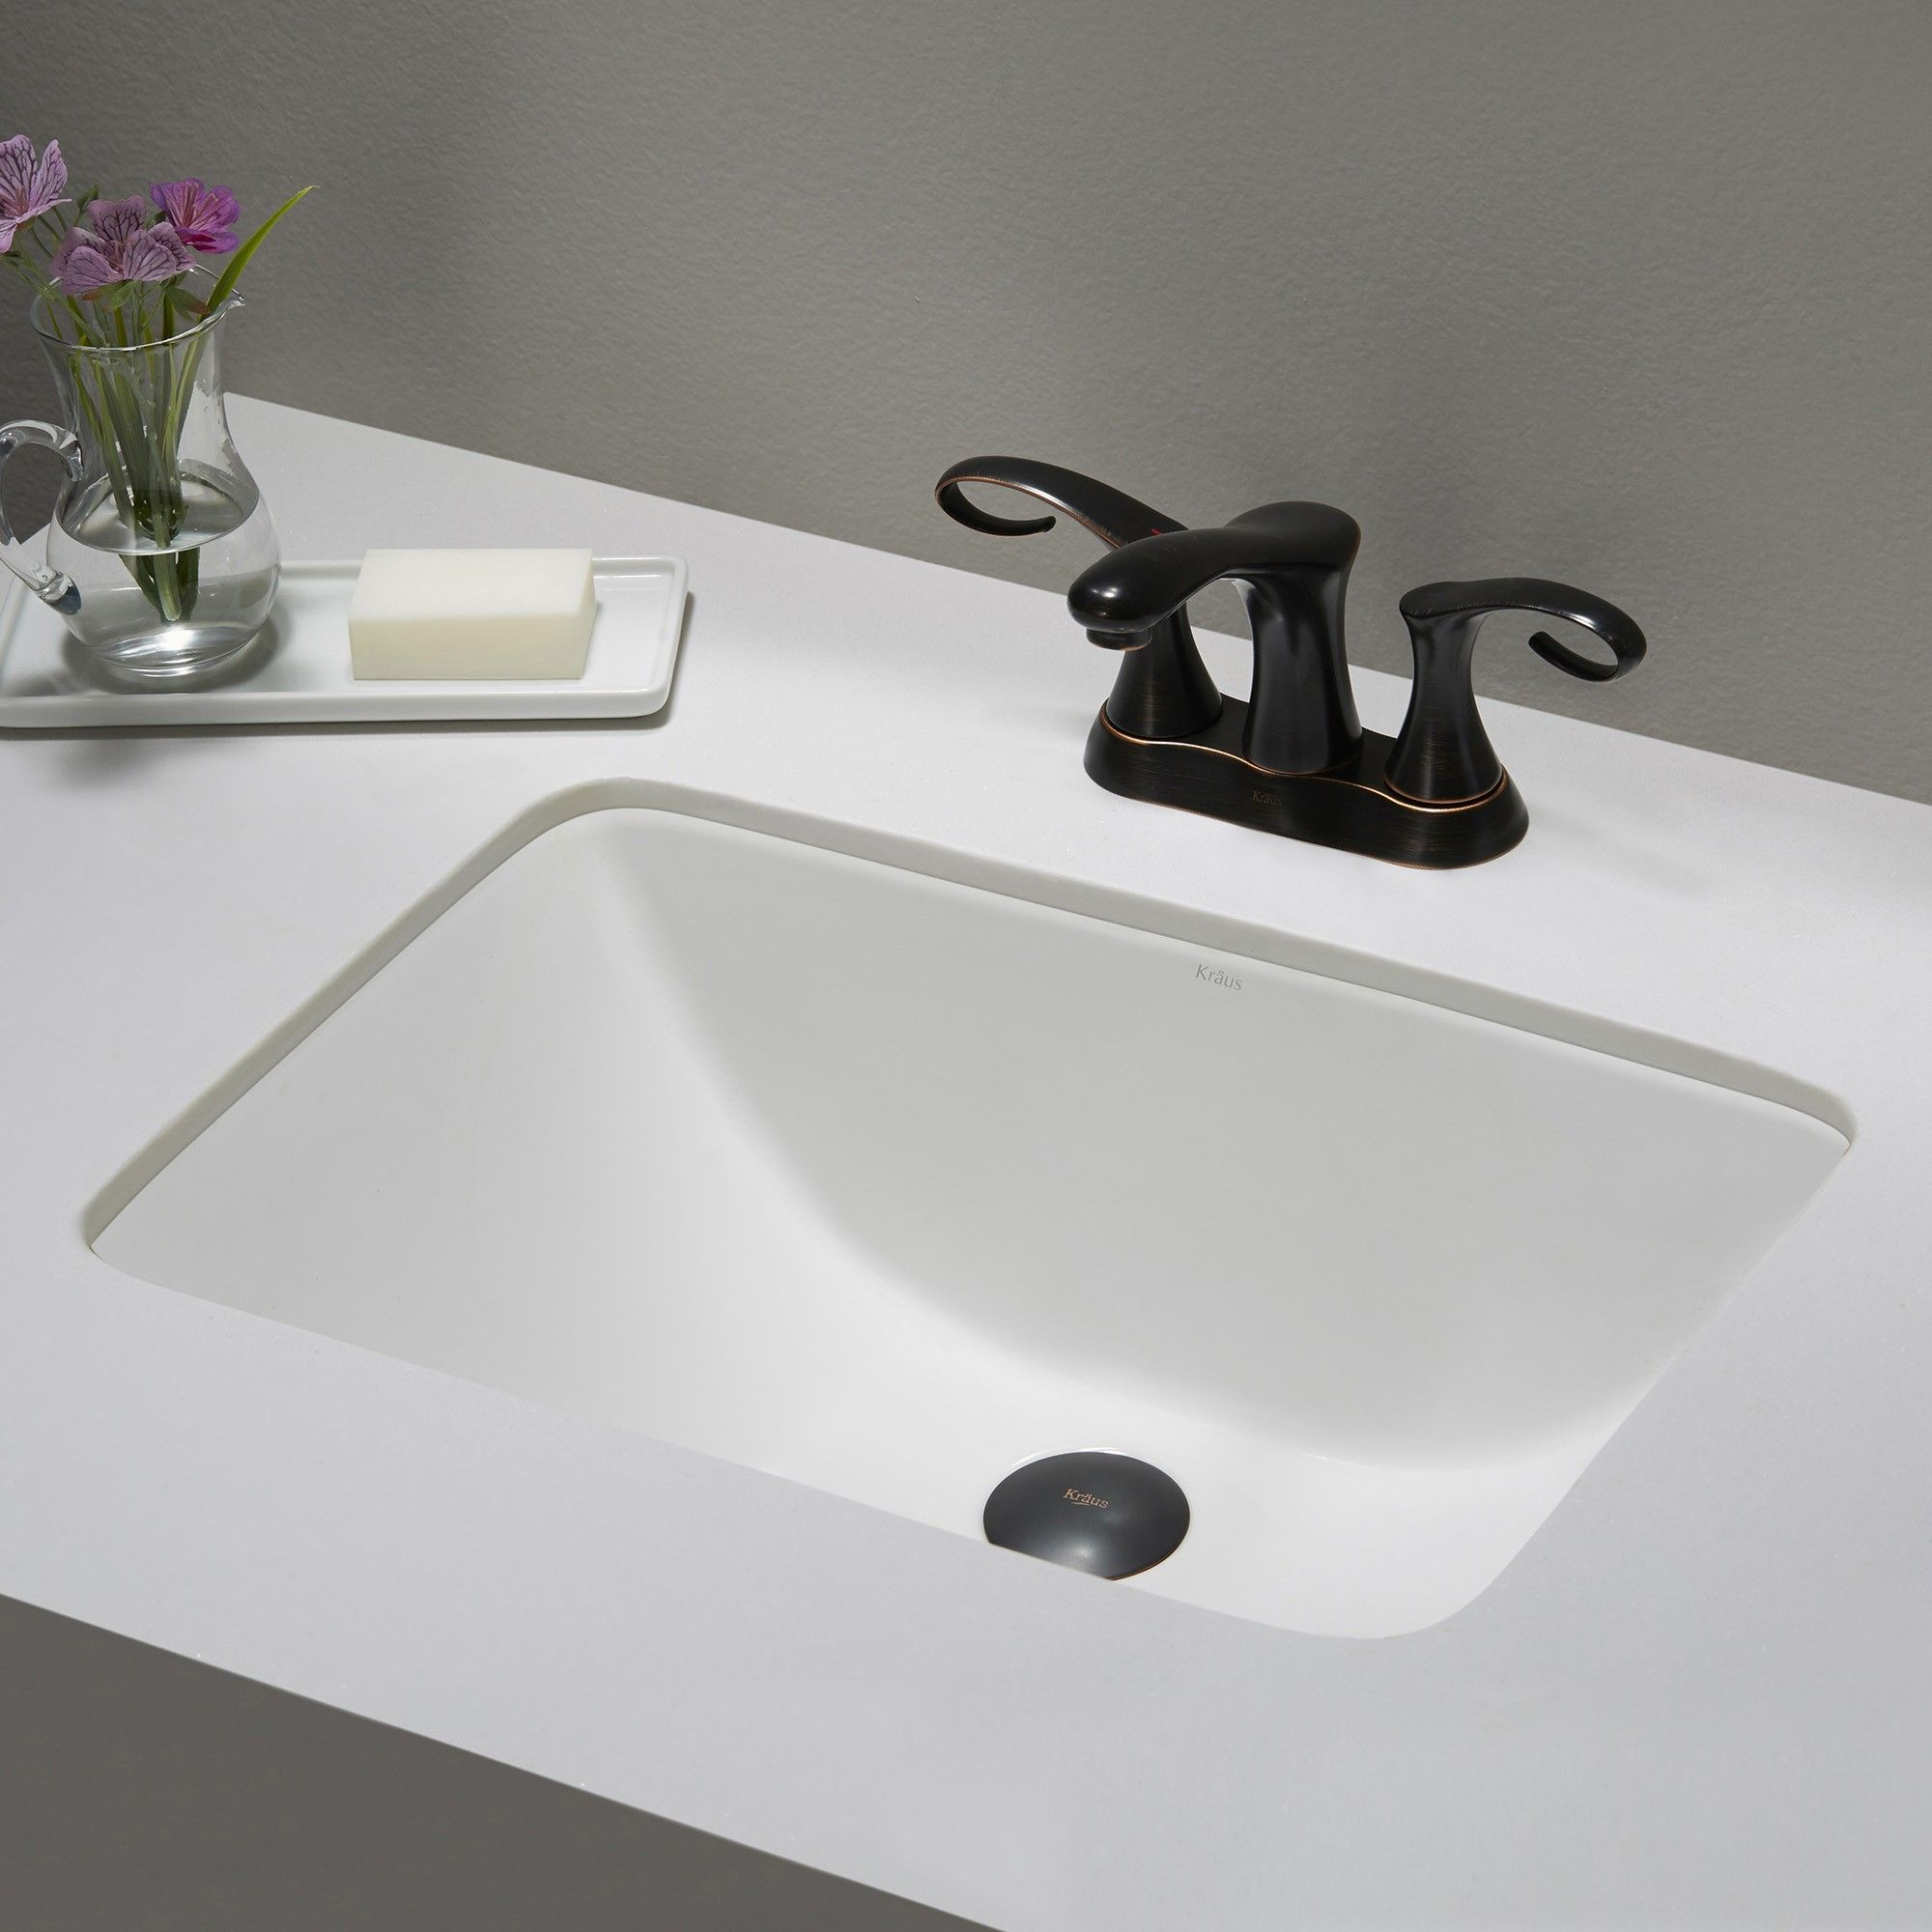 undermount rectangular bathroom sink. Small Rectangular Bathroom Sink Undermount -